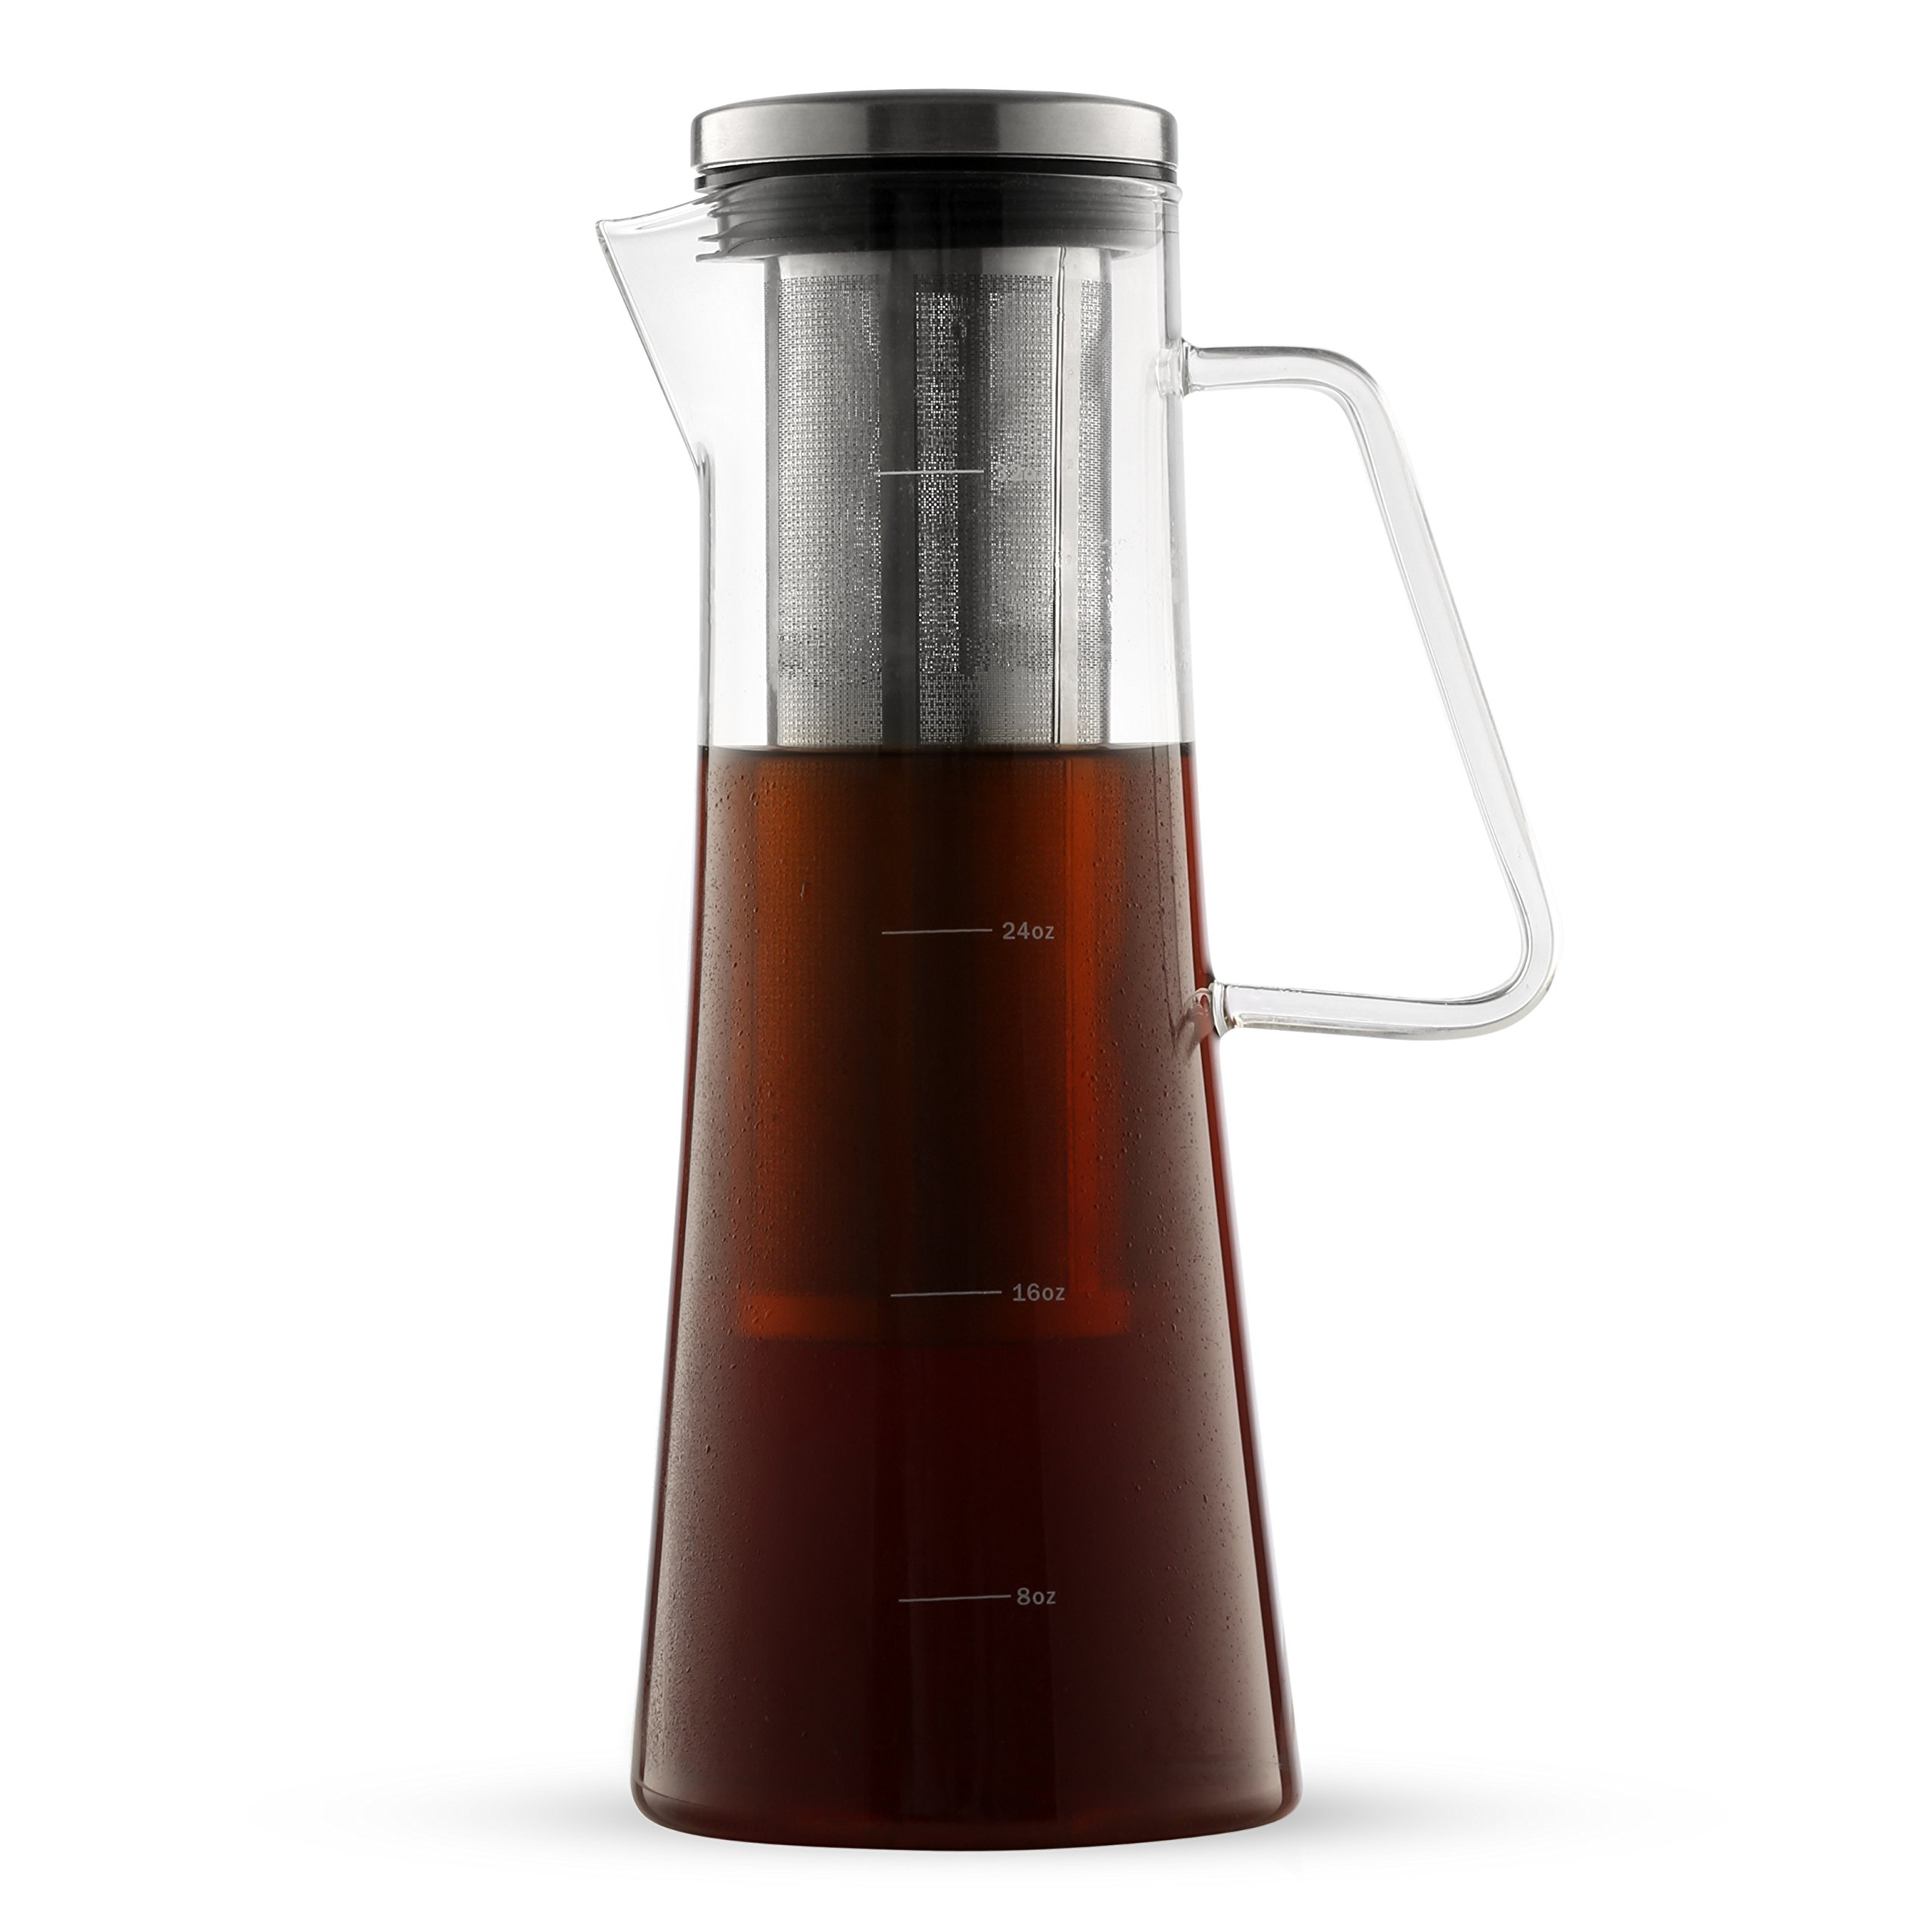 Cold Brew Coffee Maker - Iced Coffee Glass Pitcher 32oz with Sealing Removable Filter by Home and Above (Image #1)